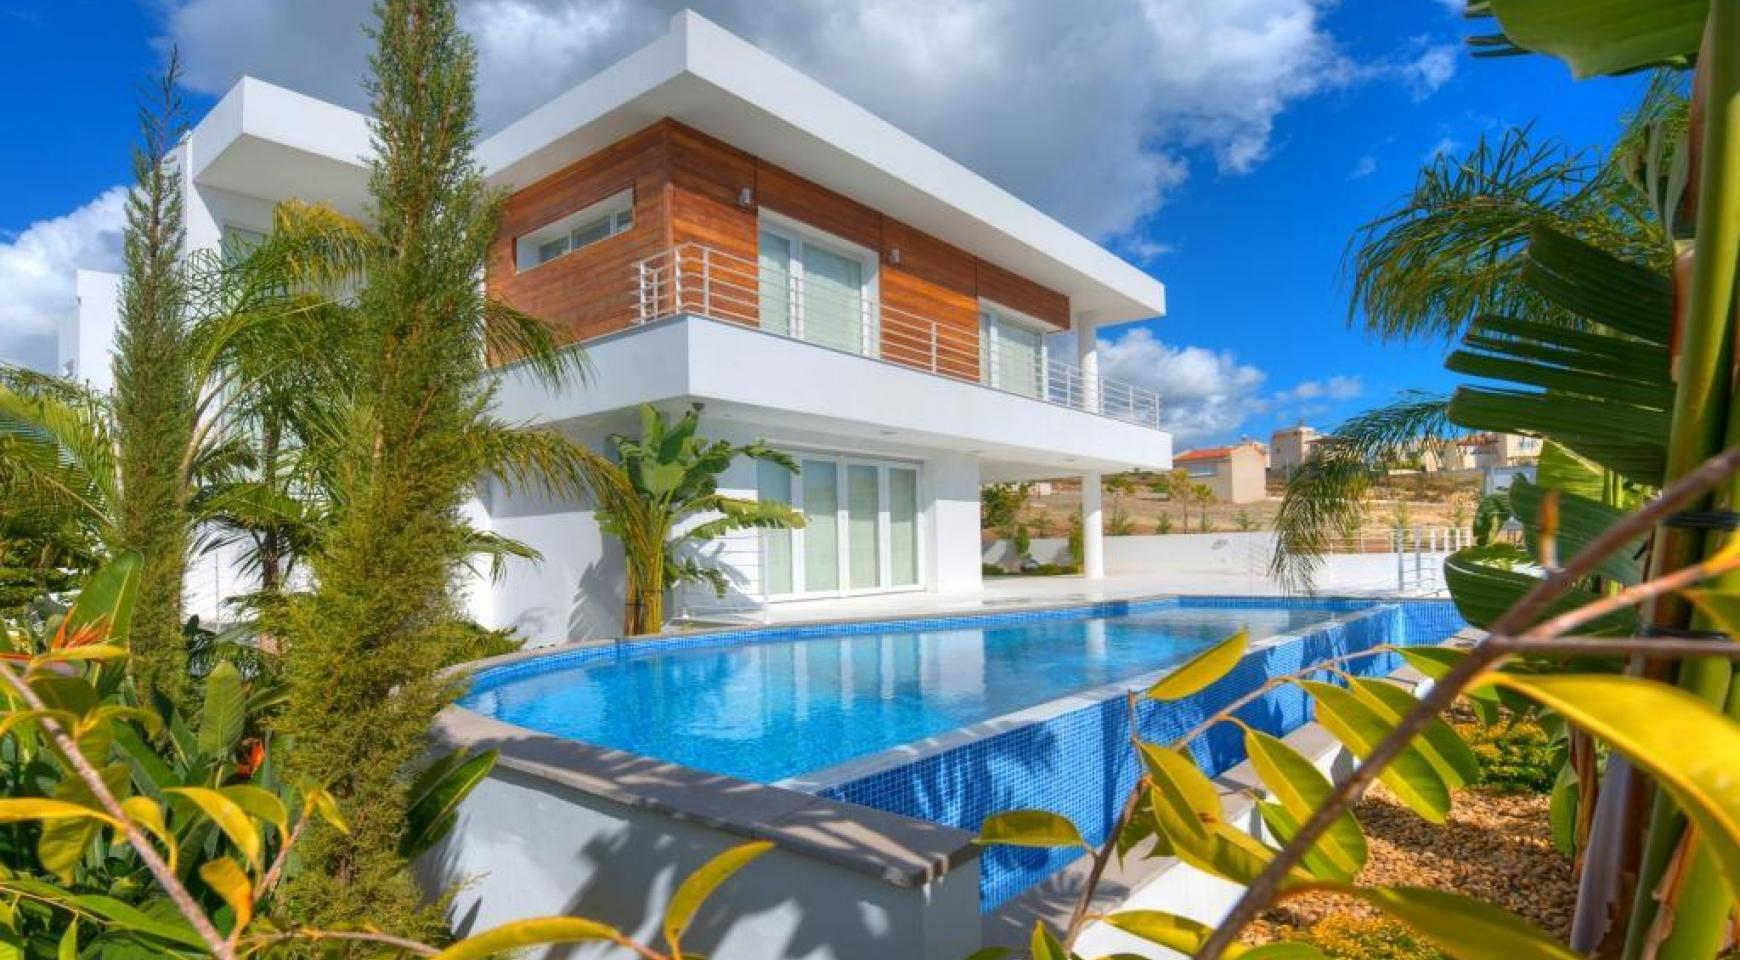 Contemporary 4 Bedroom Villa with Sea Views in Agios Tychonas - 1